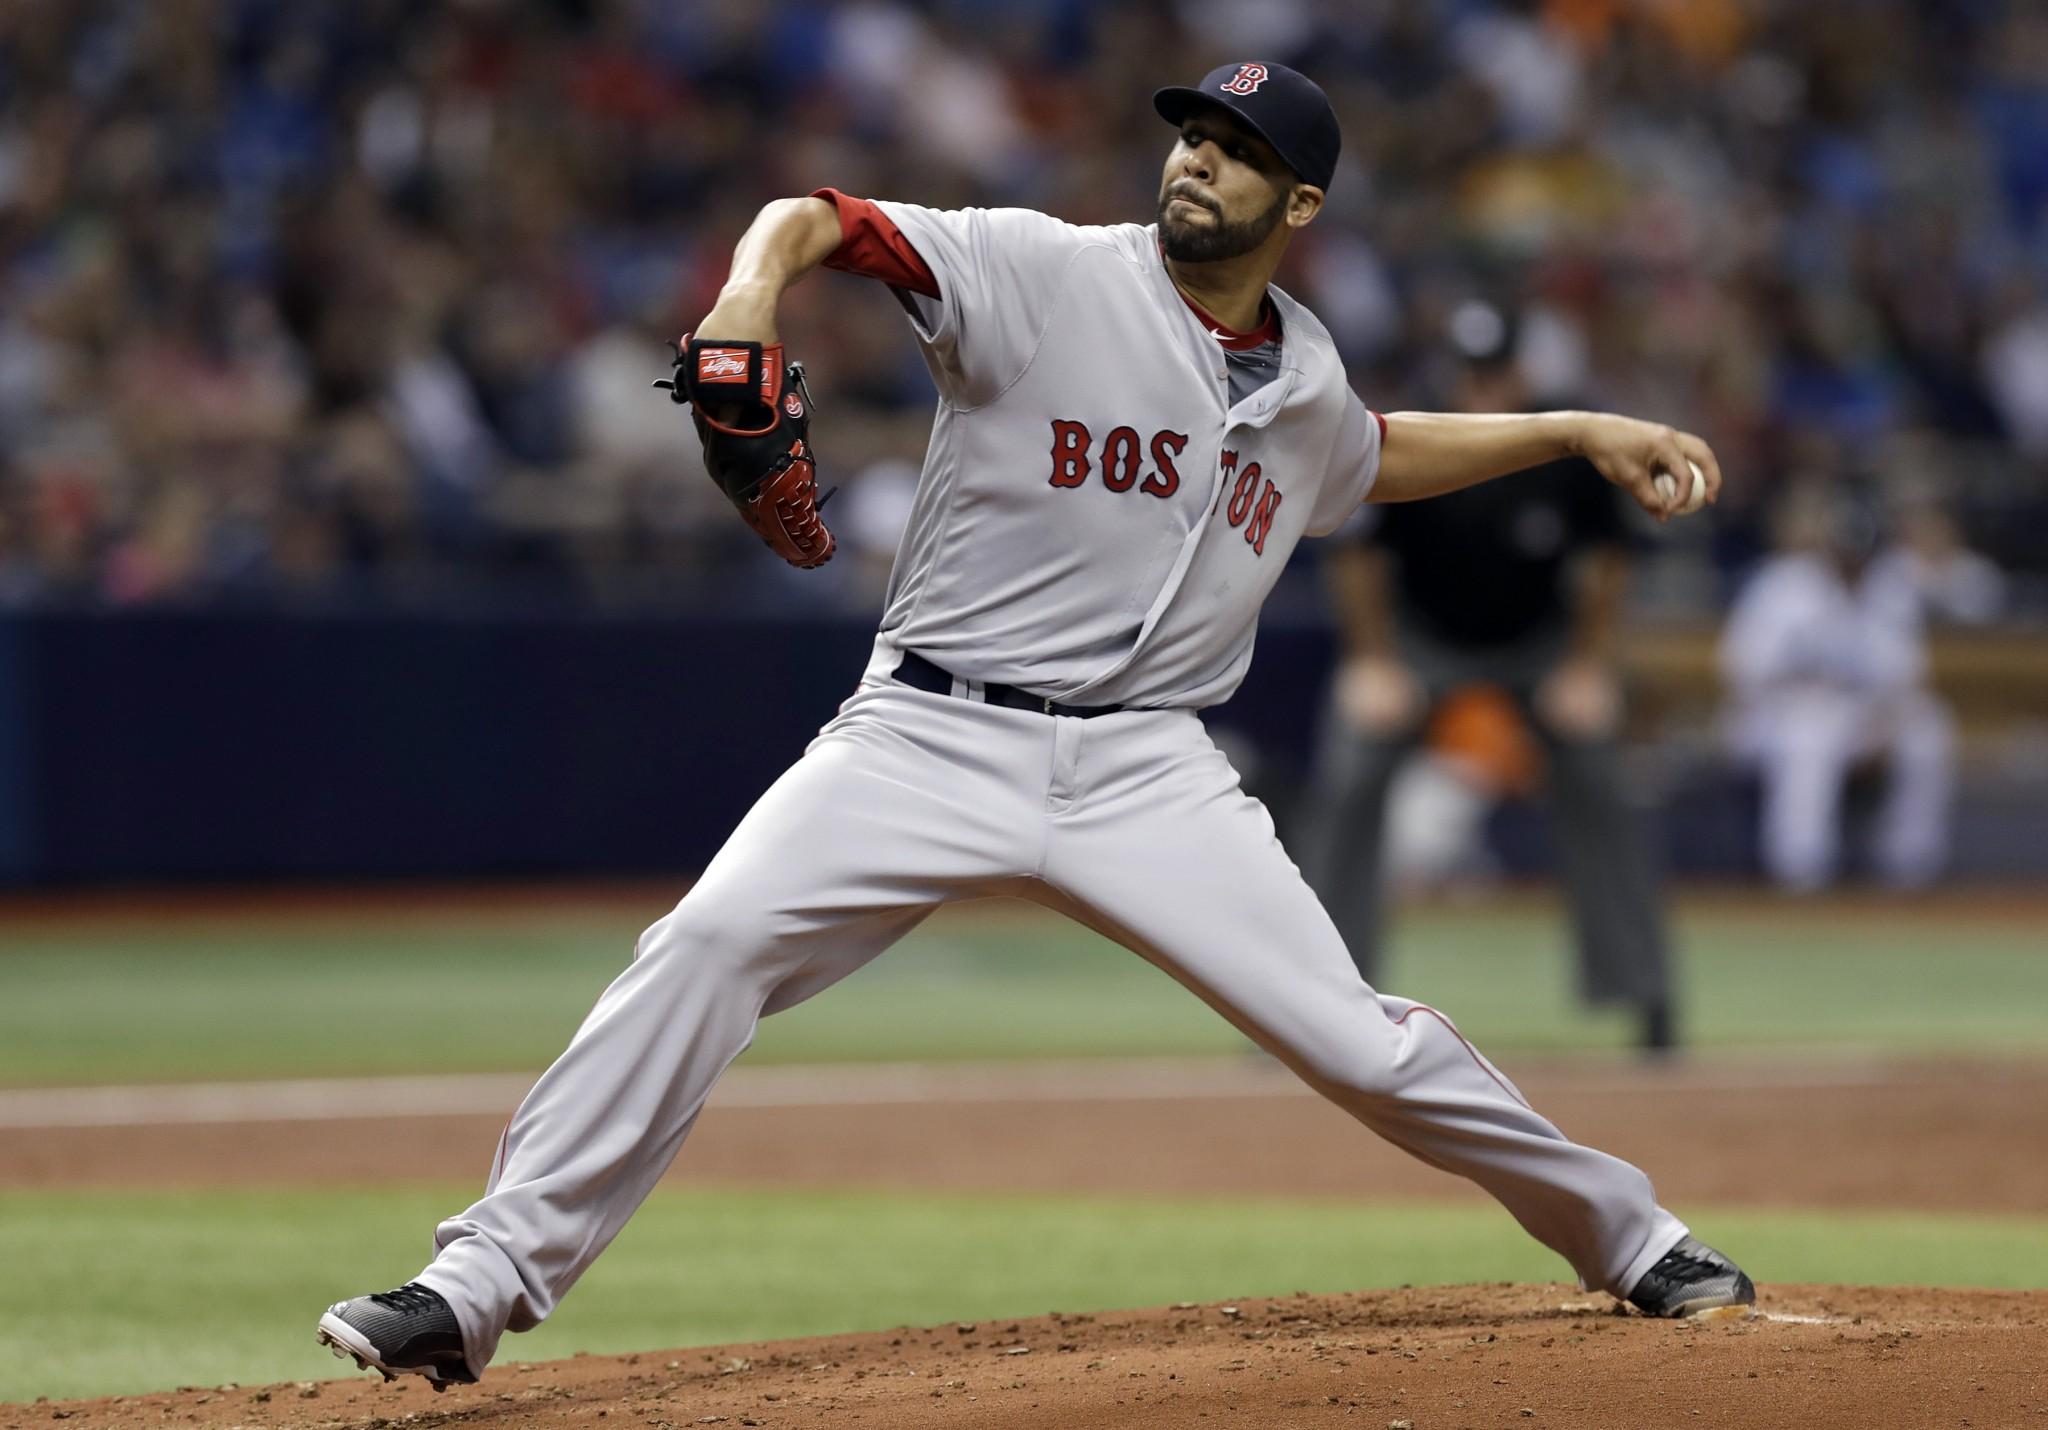 David Price pitches the Red Sox back into first place